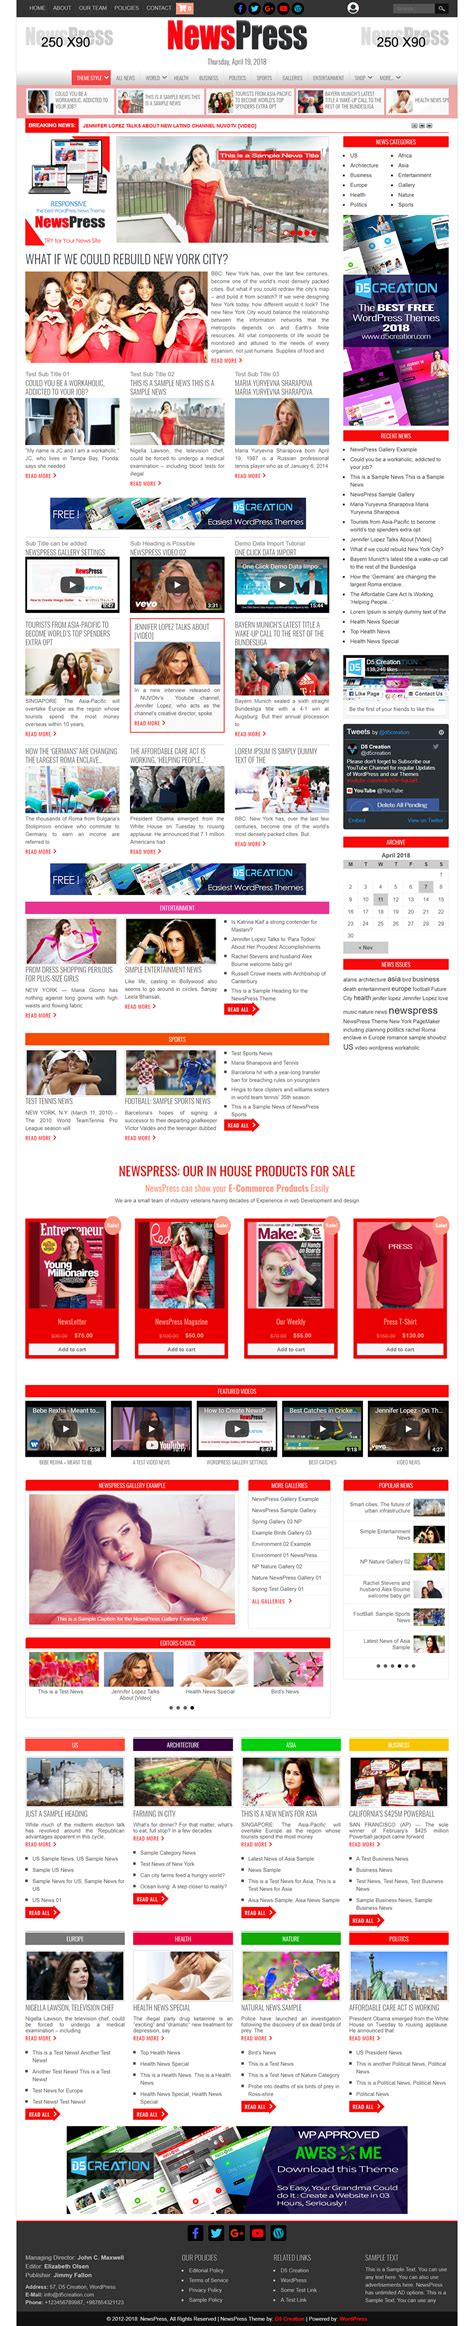 tutorial wordpress magazine theme newspress wordpress magazine themes wordpresss news themes